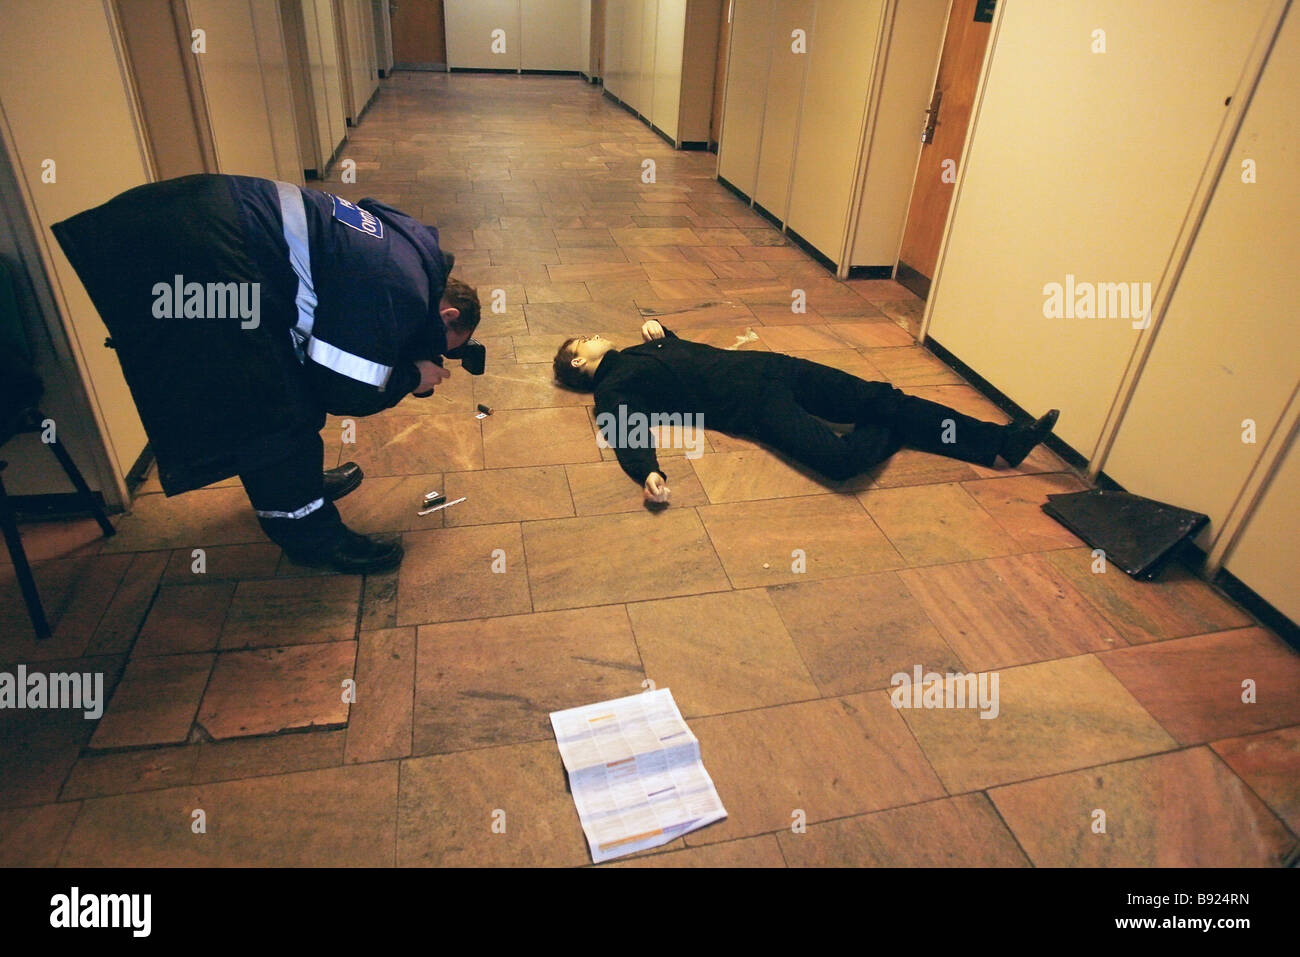 An unidentified person committed suicide on the first floor of the industrial feedstock importer Promsyryeimport - Stock Image